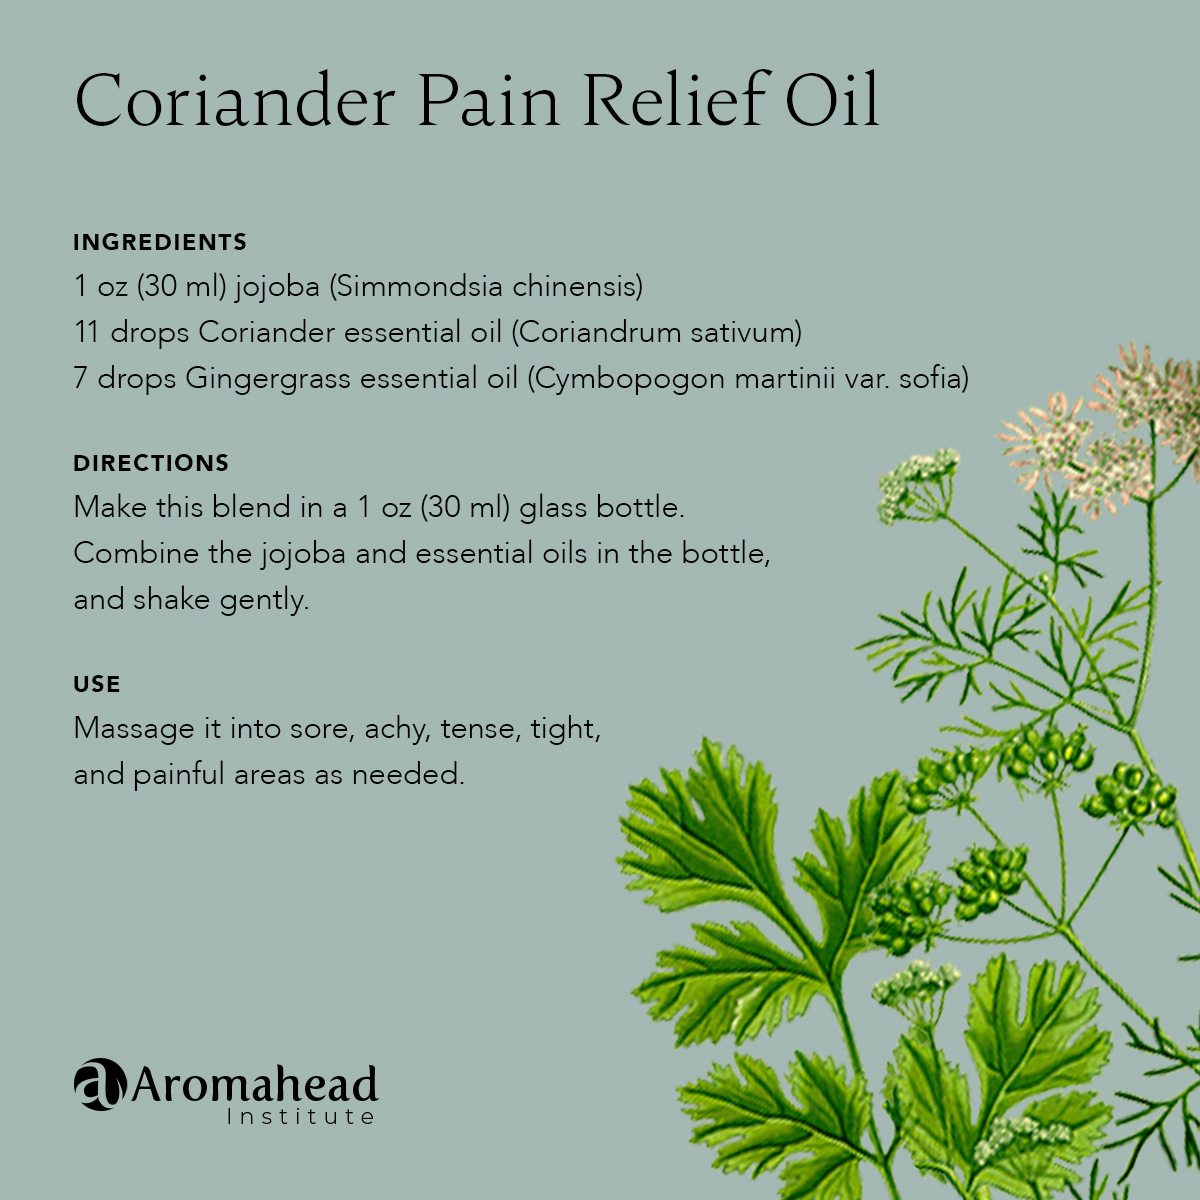 Coriander Pain Relief Oil